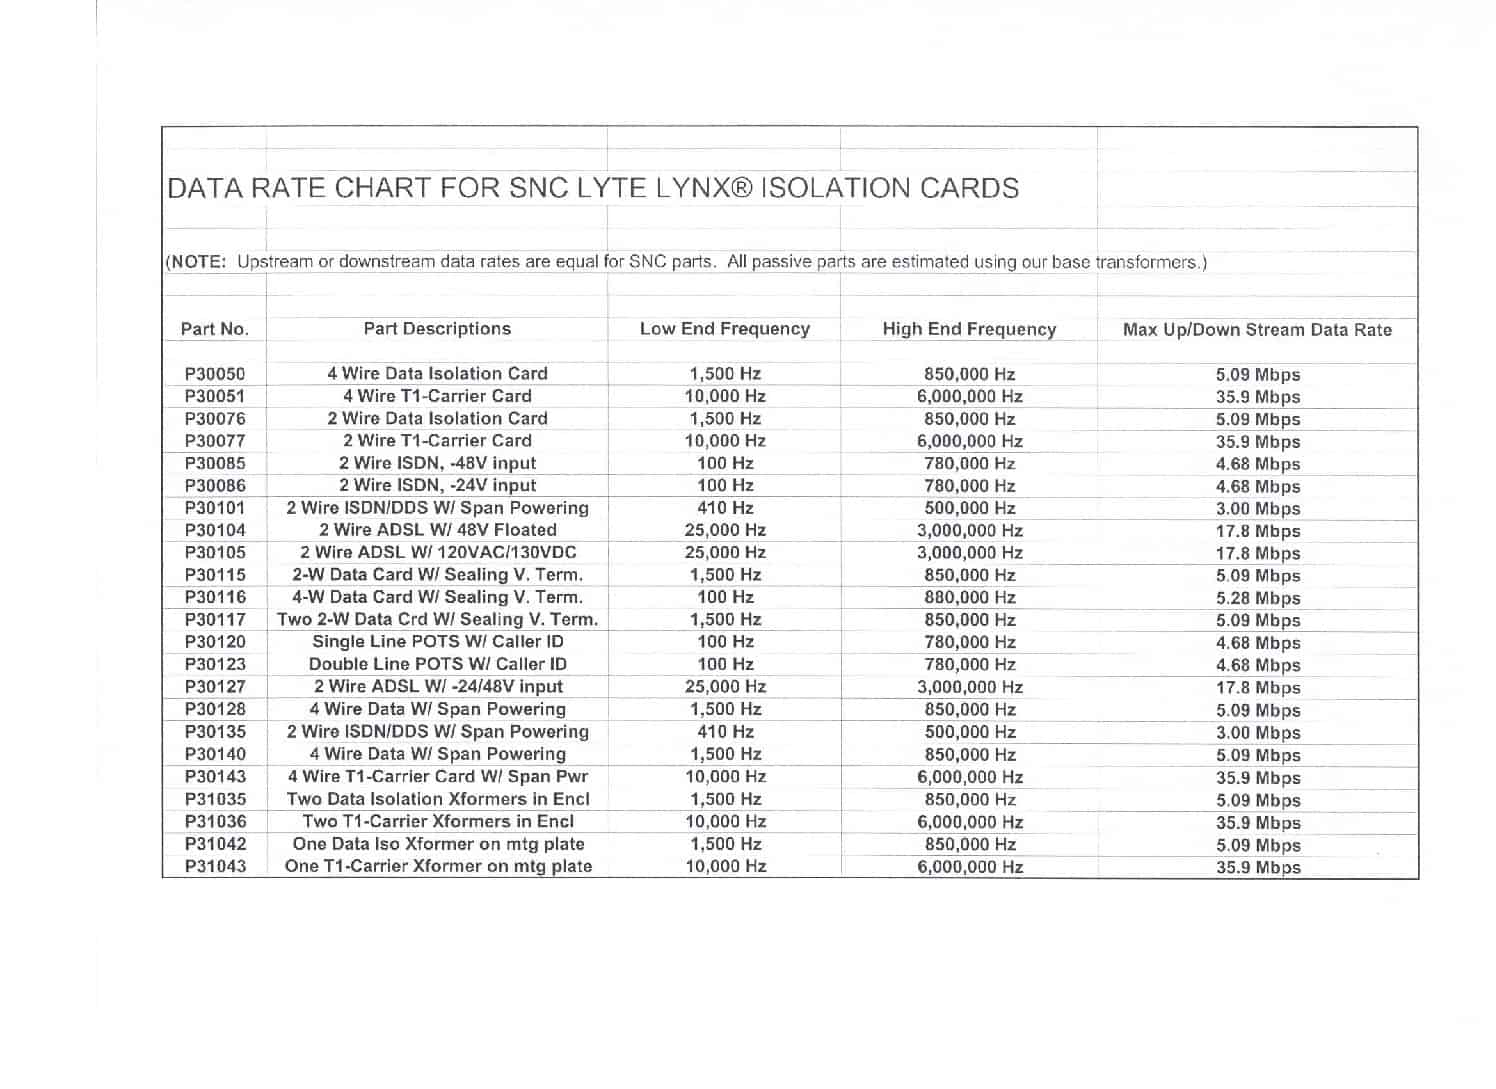 Data Rate Chart for Lyte Lynx Isol Cards-11-6-12 PDF thumbnail